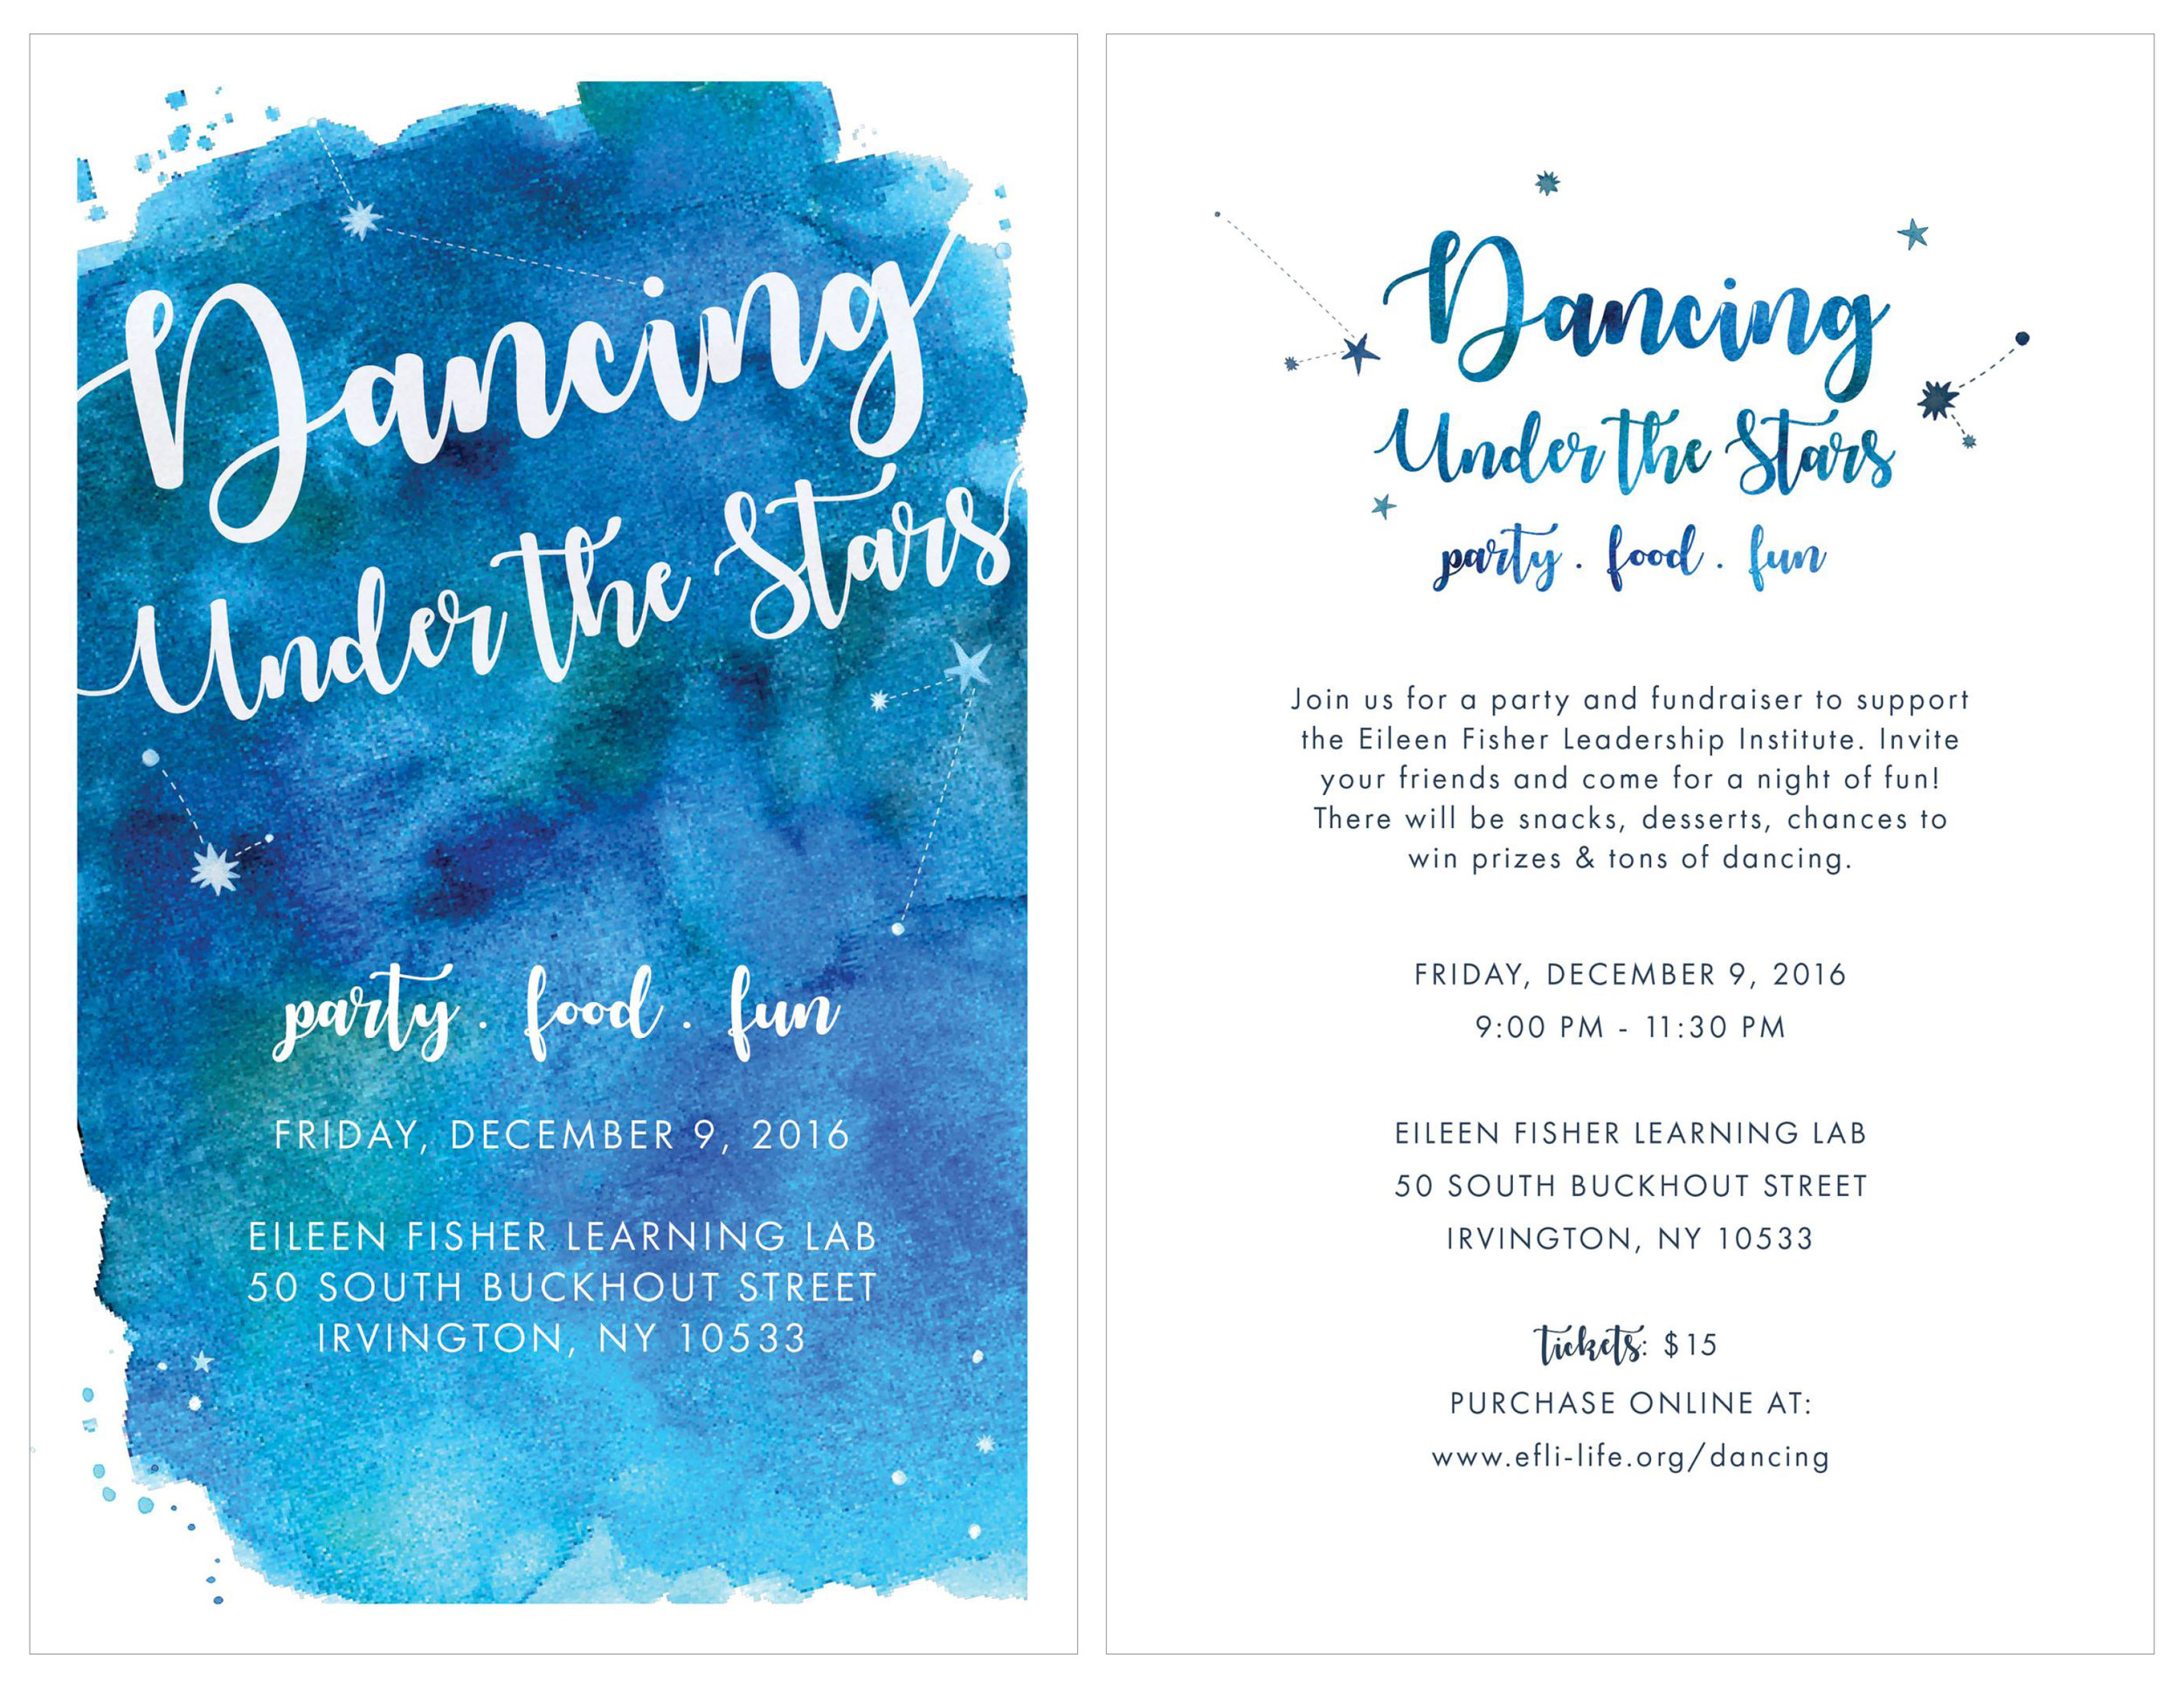 youth after party invitation,december 2016 - To complement the design of the Gratitude Gala and its Starry Nighttheme, I brought in brighter colors and playful fonts to appeal to teenagers for an invitation to a post-gala youth after party.LEFT: Postcard FrontRight: Postcard Back